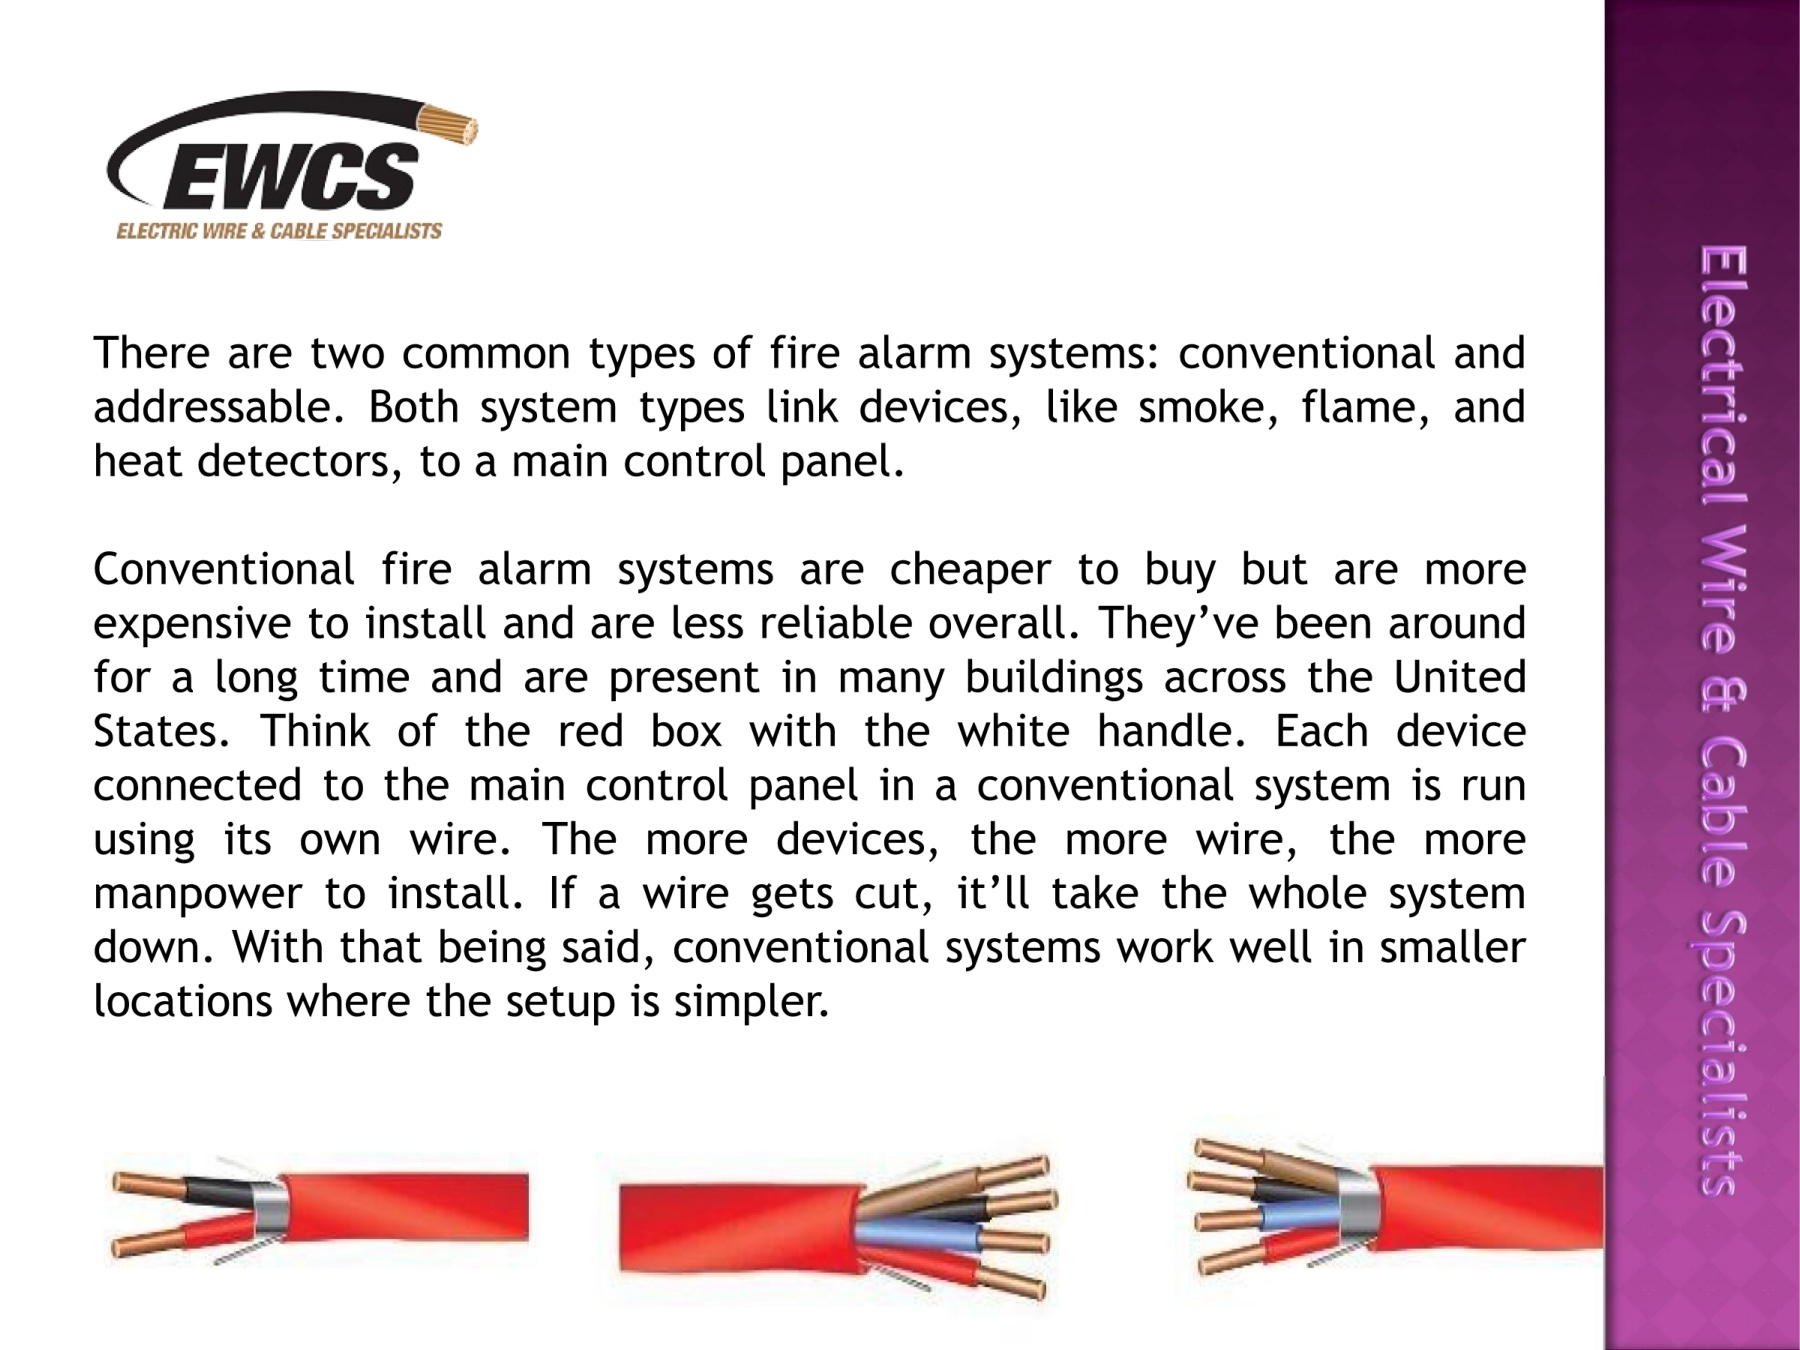 hight resolution of fire alarm cable so much more than meets the eye pages 1 7 text version anyflip